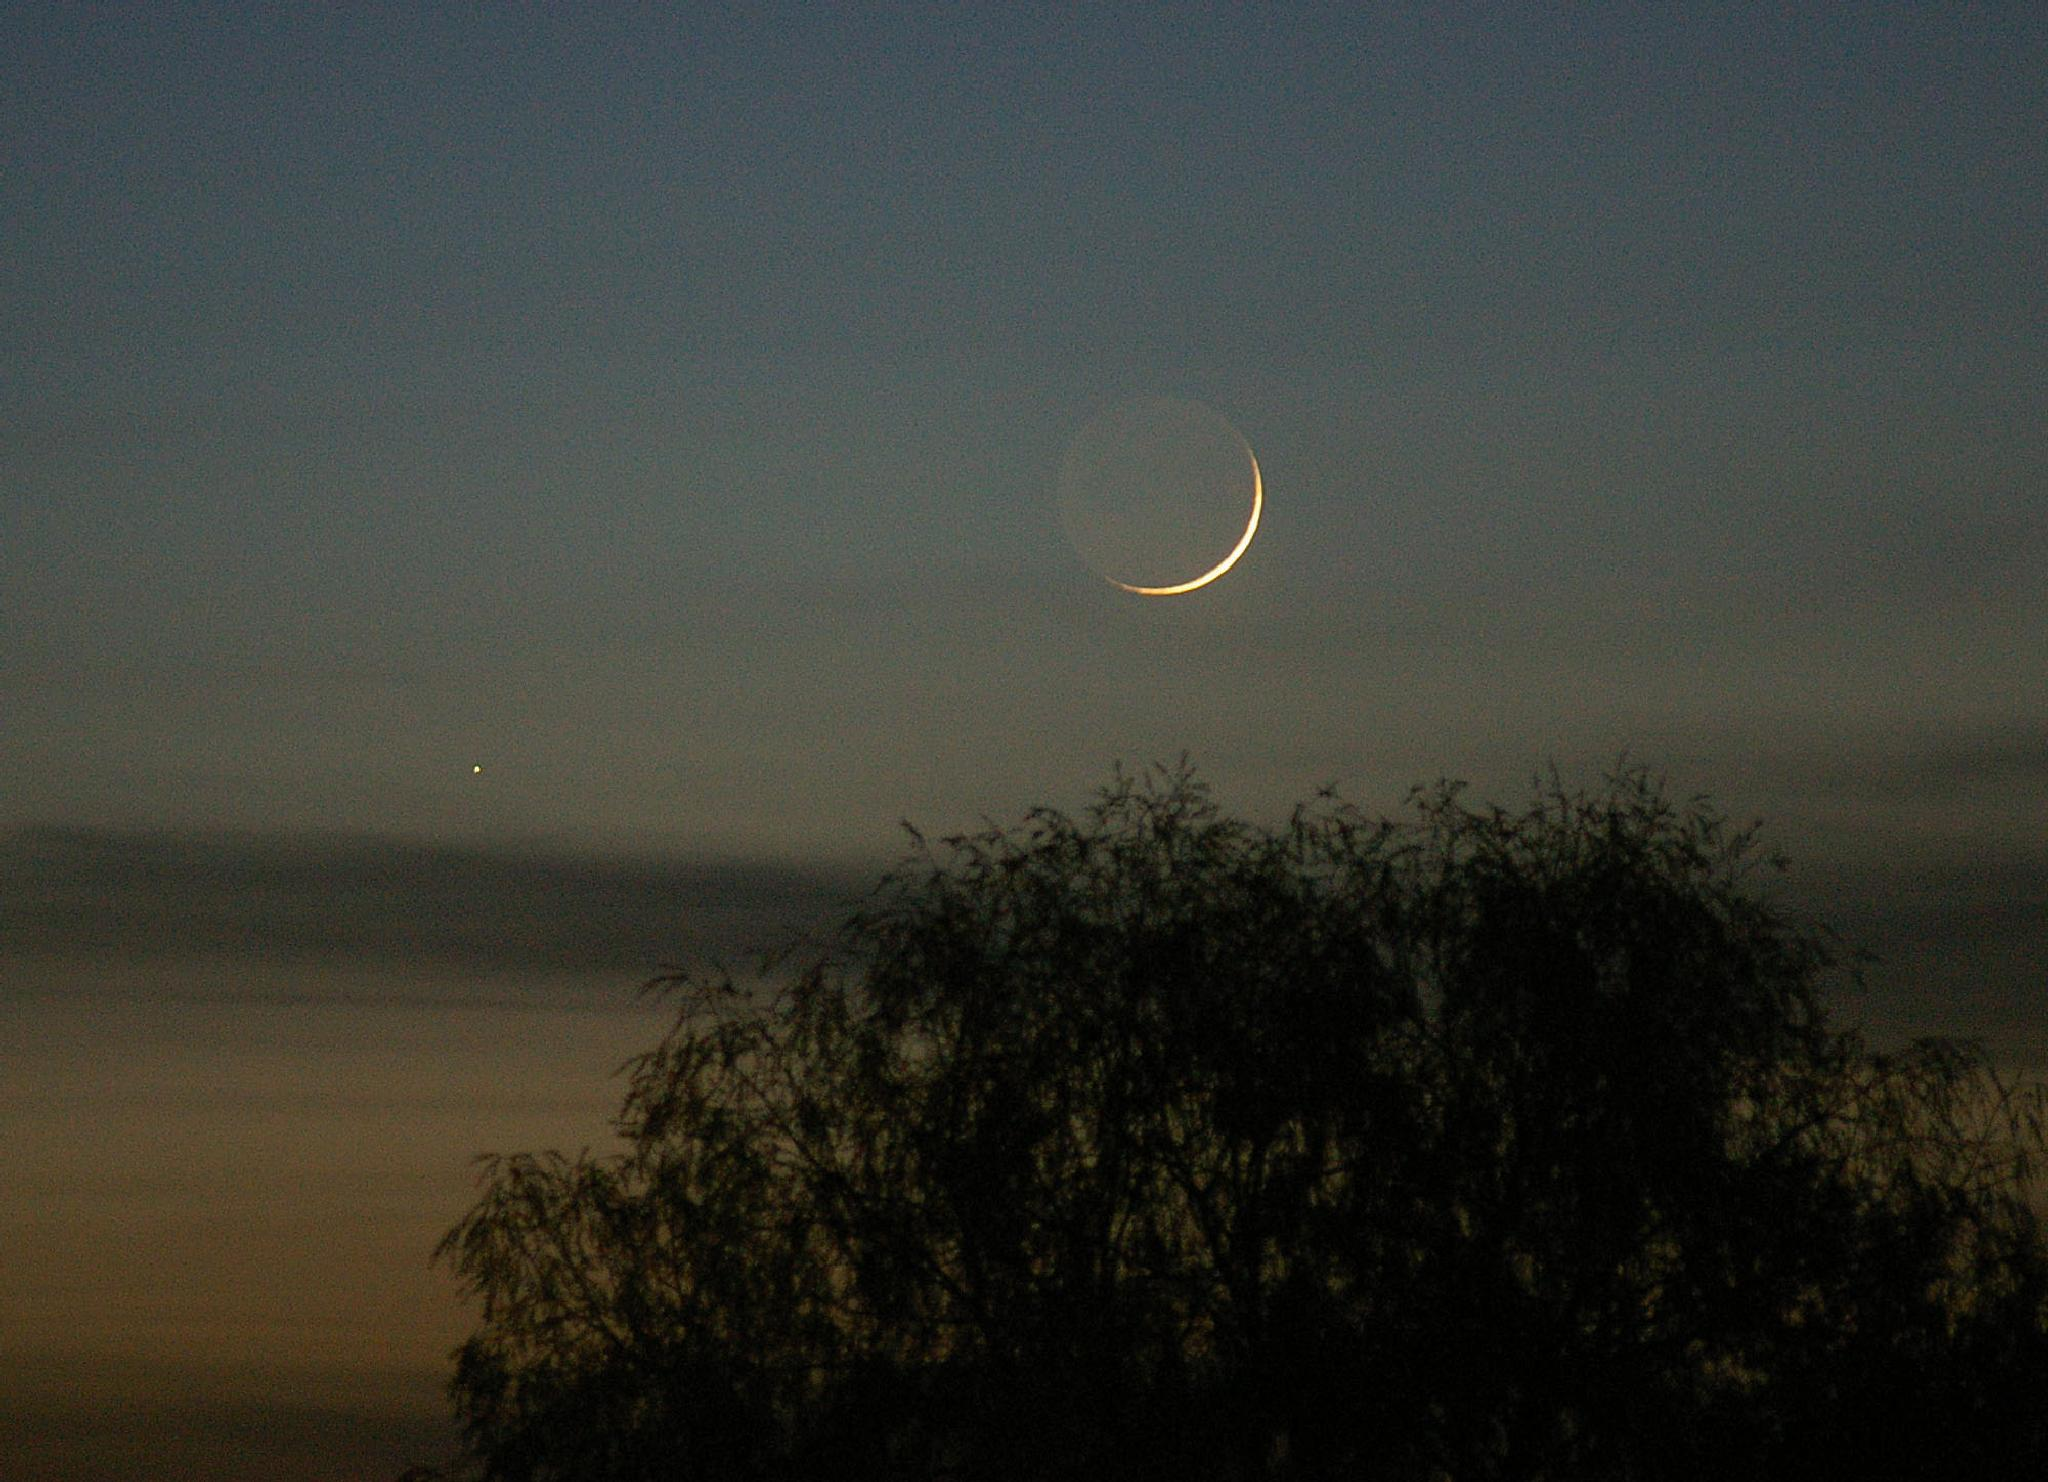 Planet Mercury and crescent moon 2008 by Anders Wettergren